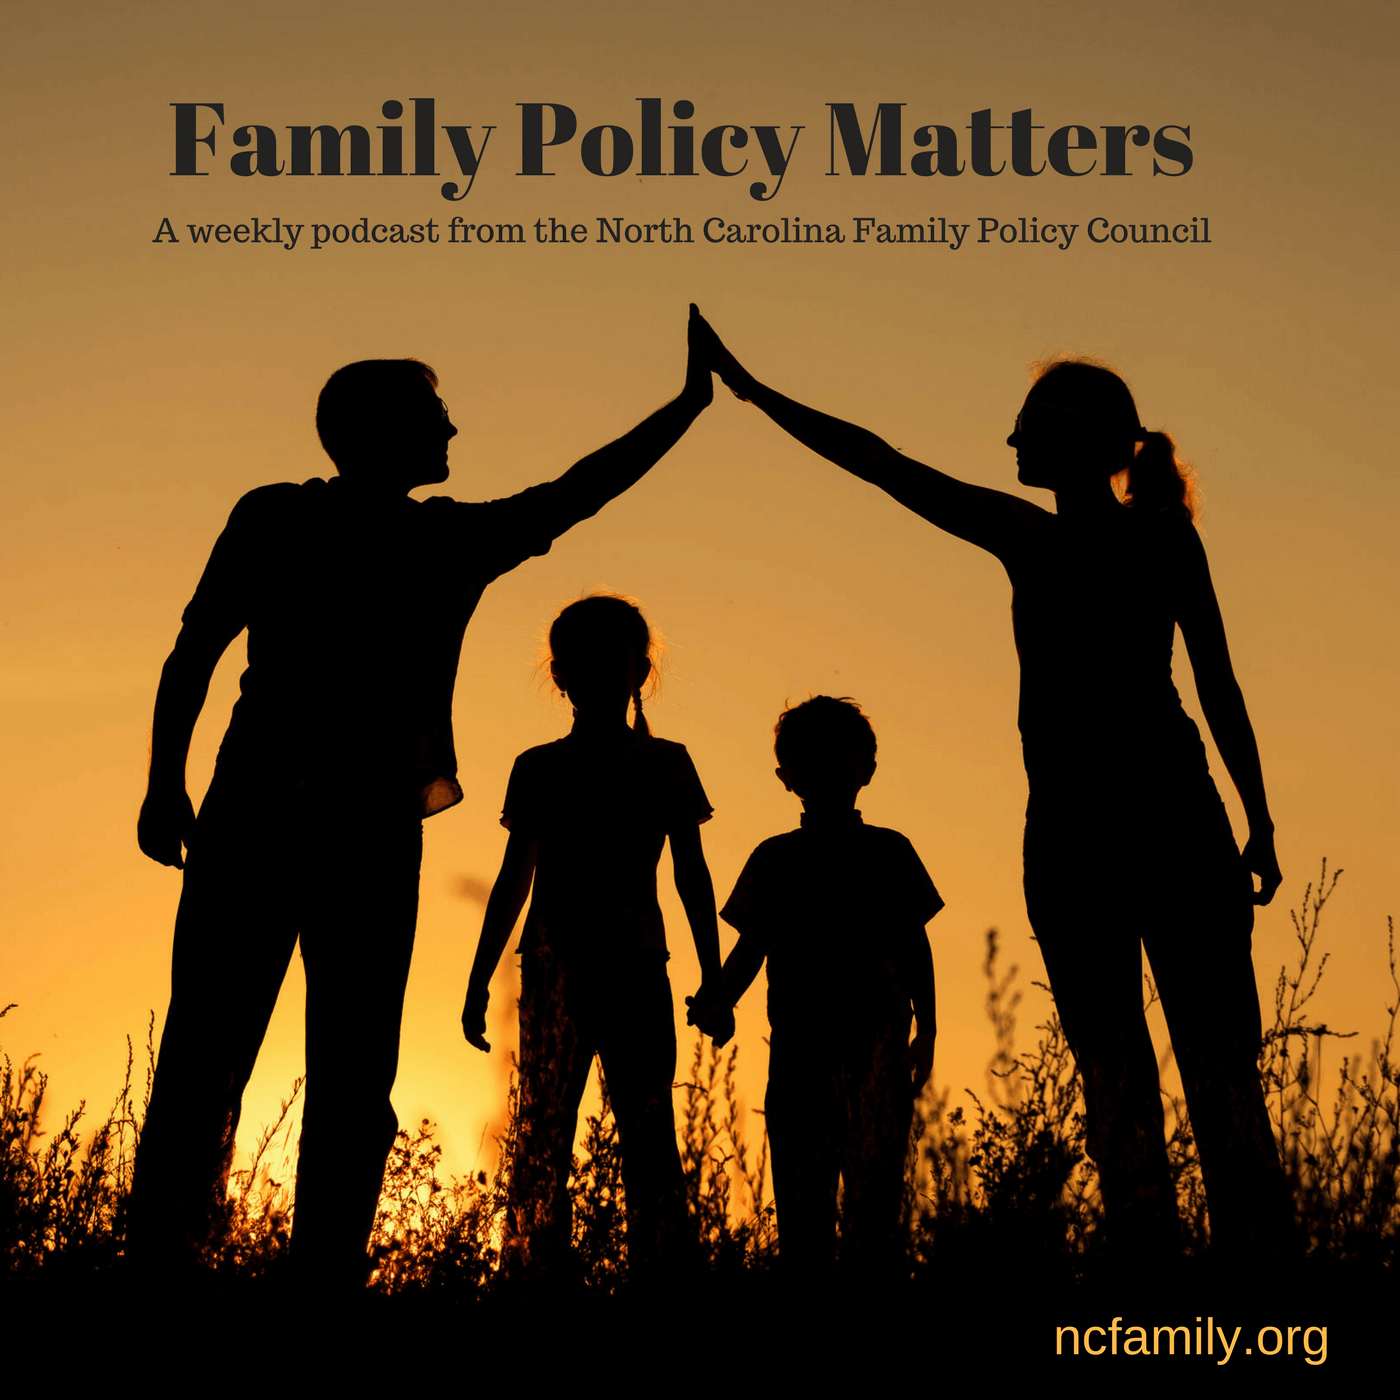 NC Family's Family Policy Matters show art